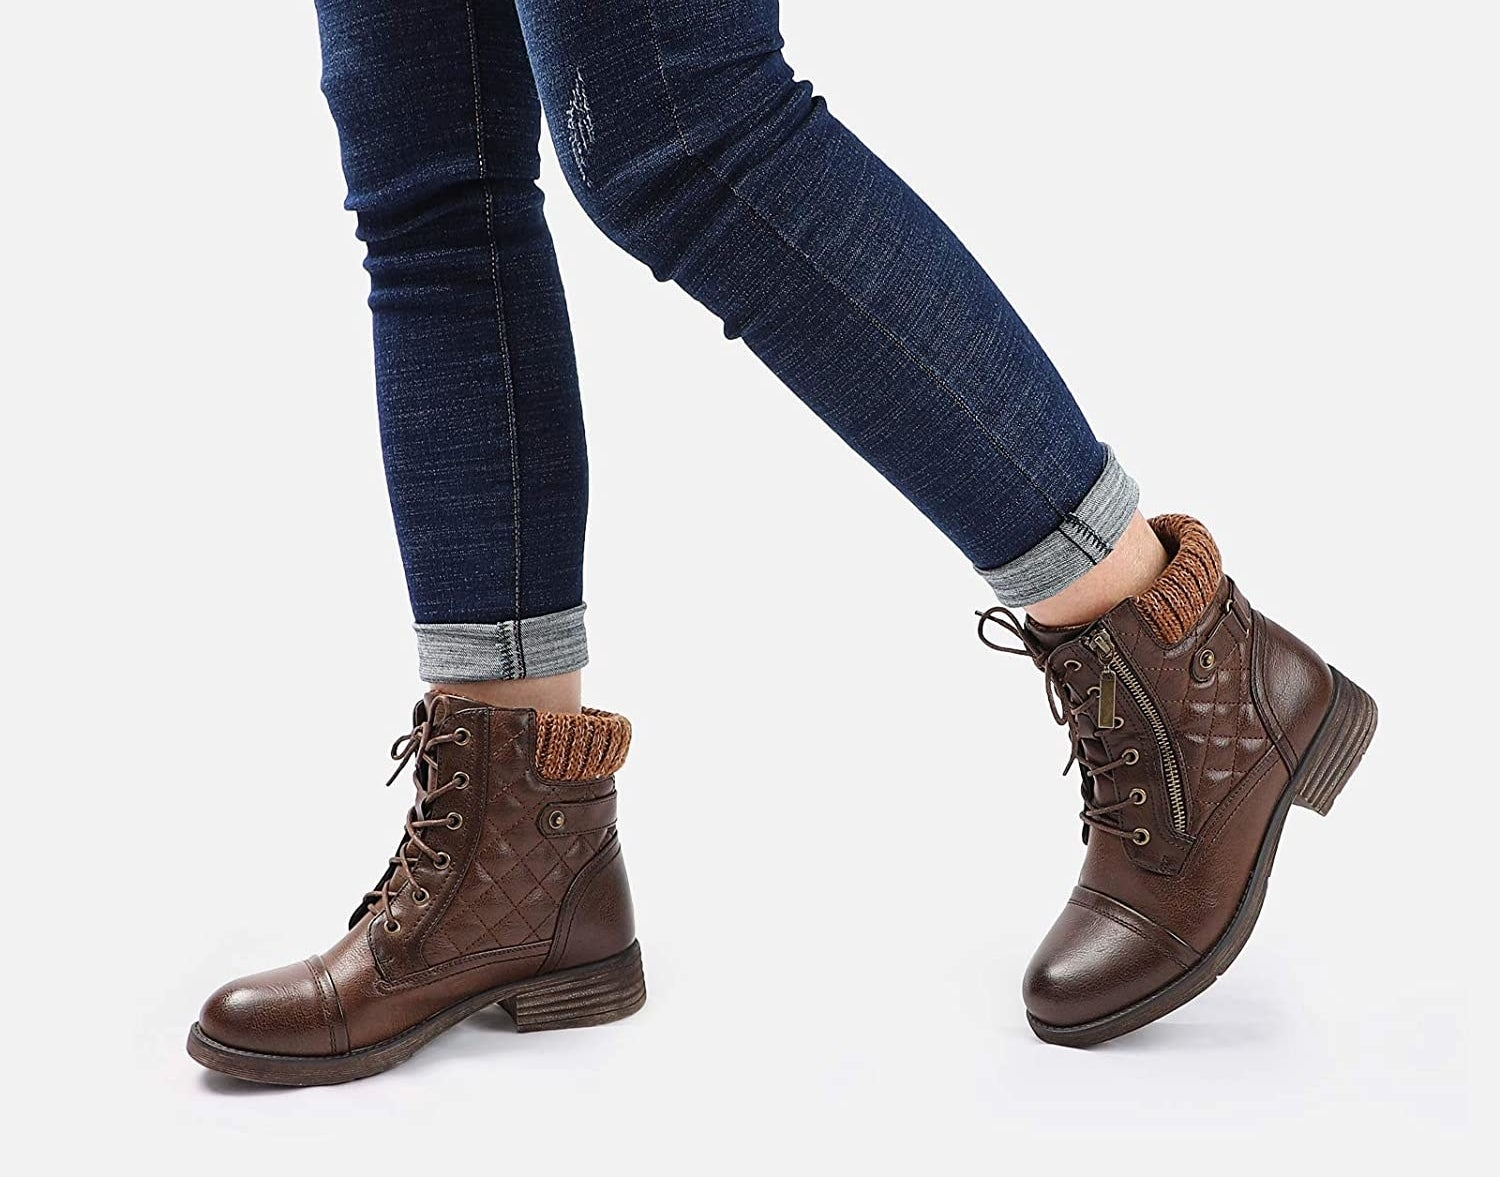 Model wearing the brown boots, which have a quilted side panel and elastic back